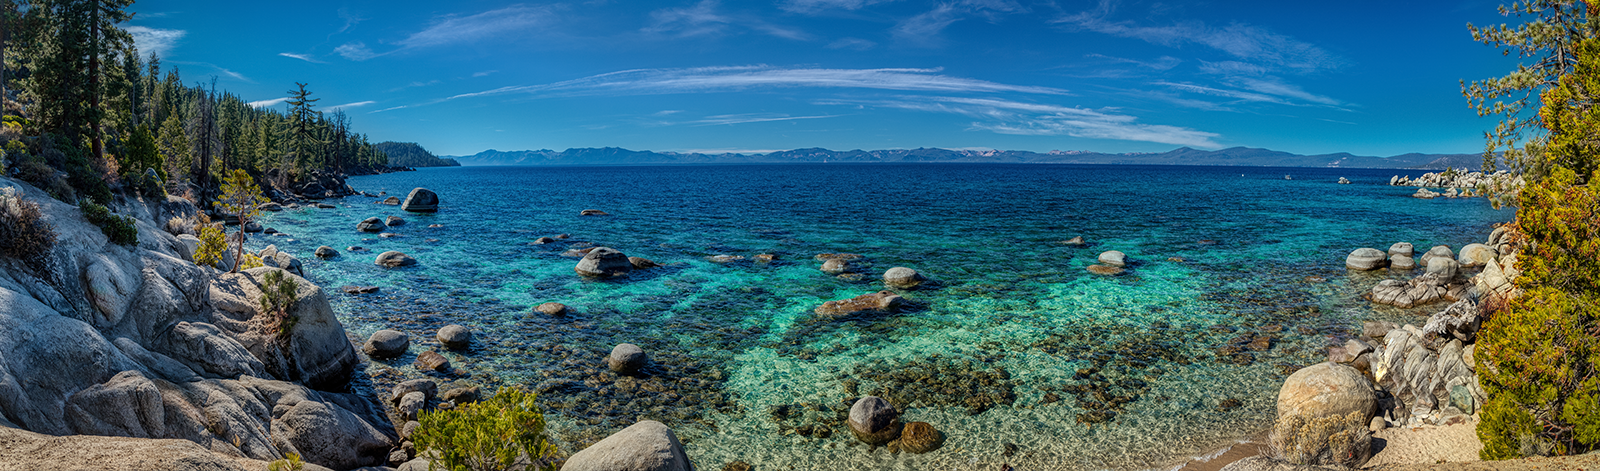 Best things to do in Lake Tahoe in the off season